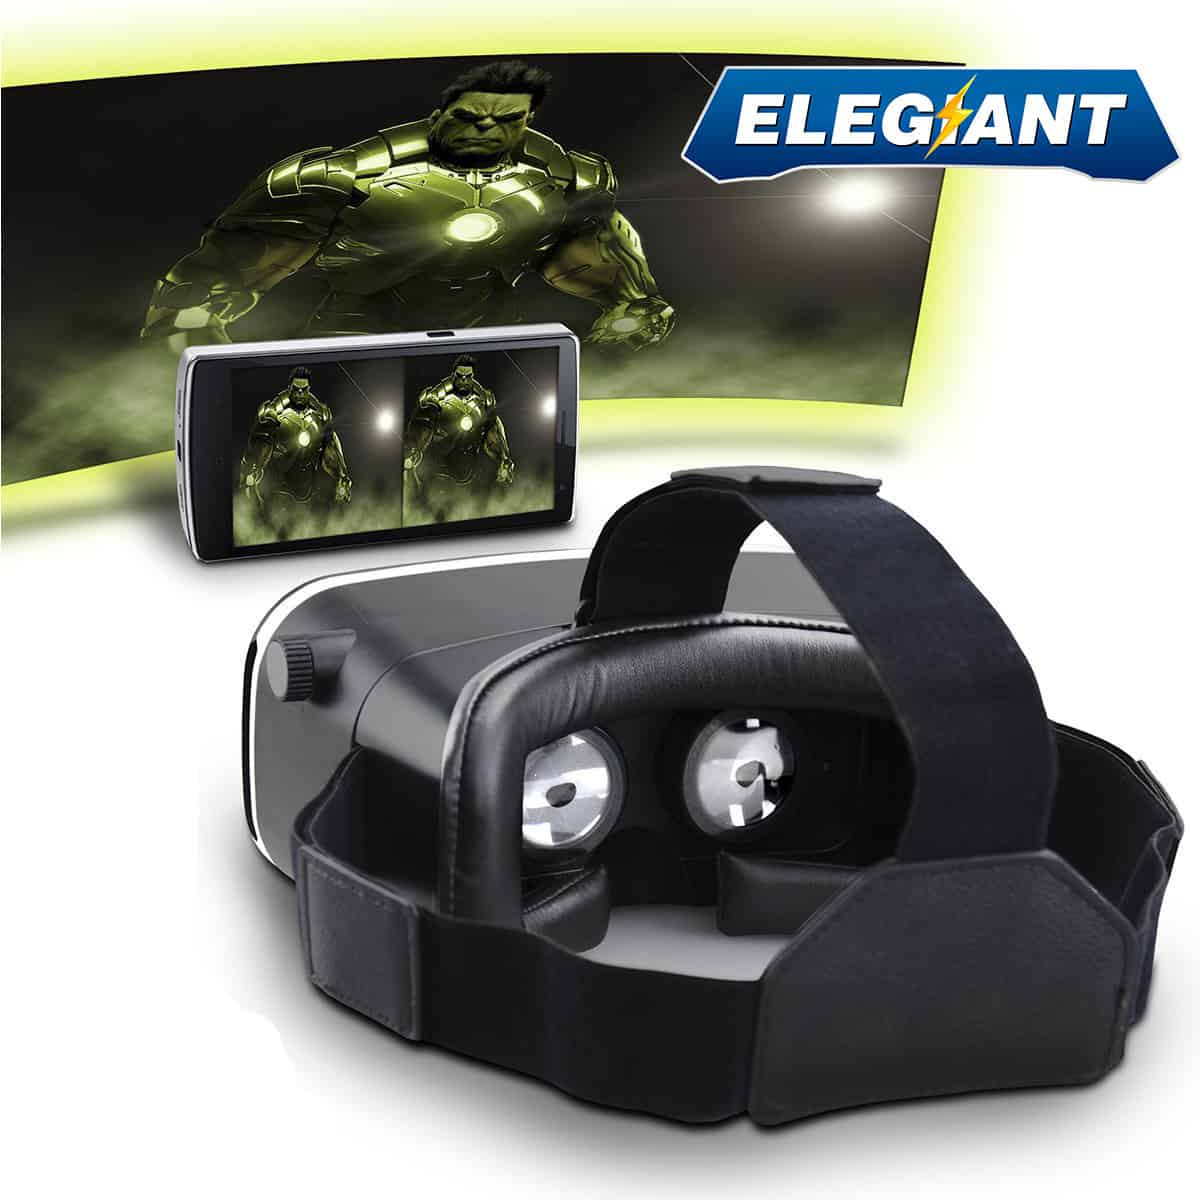 Elegiant-3d-glasses-review